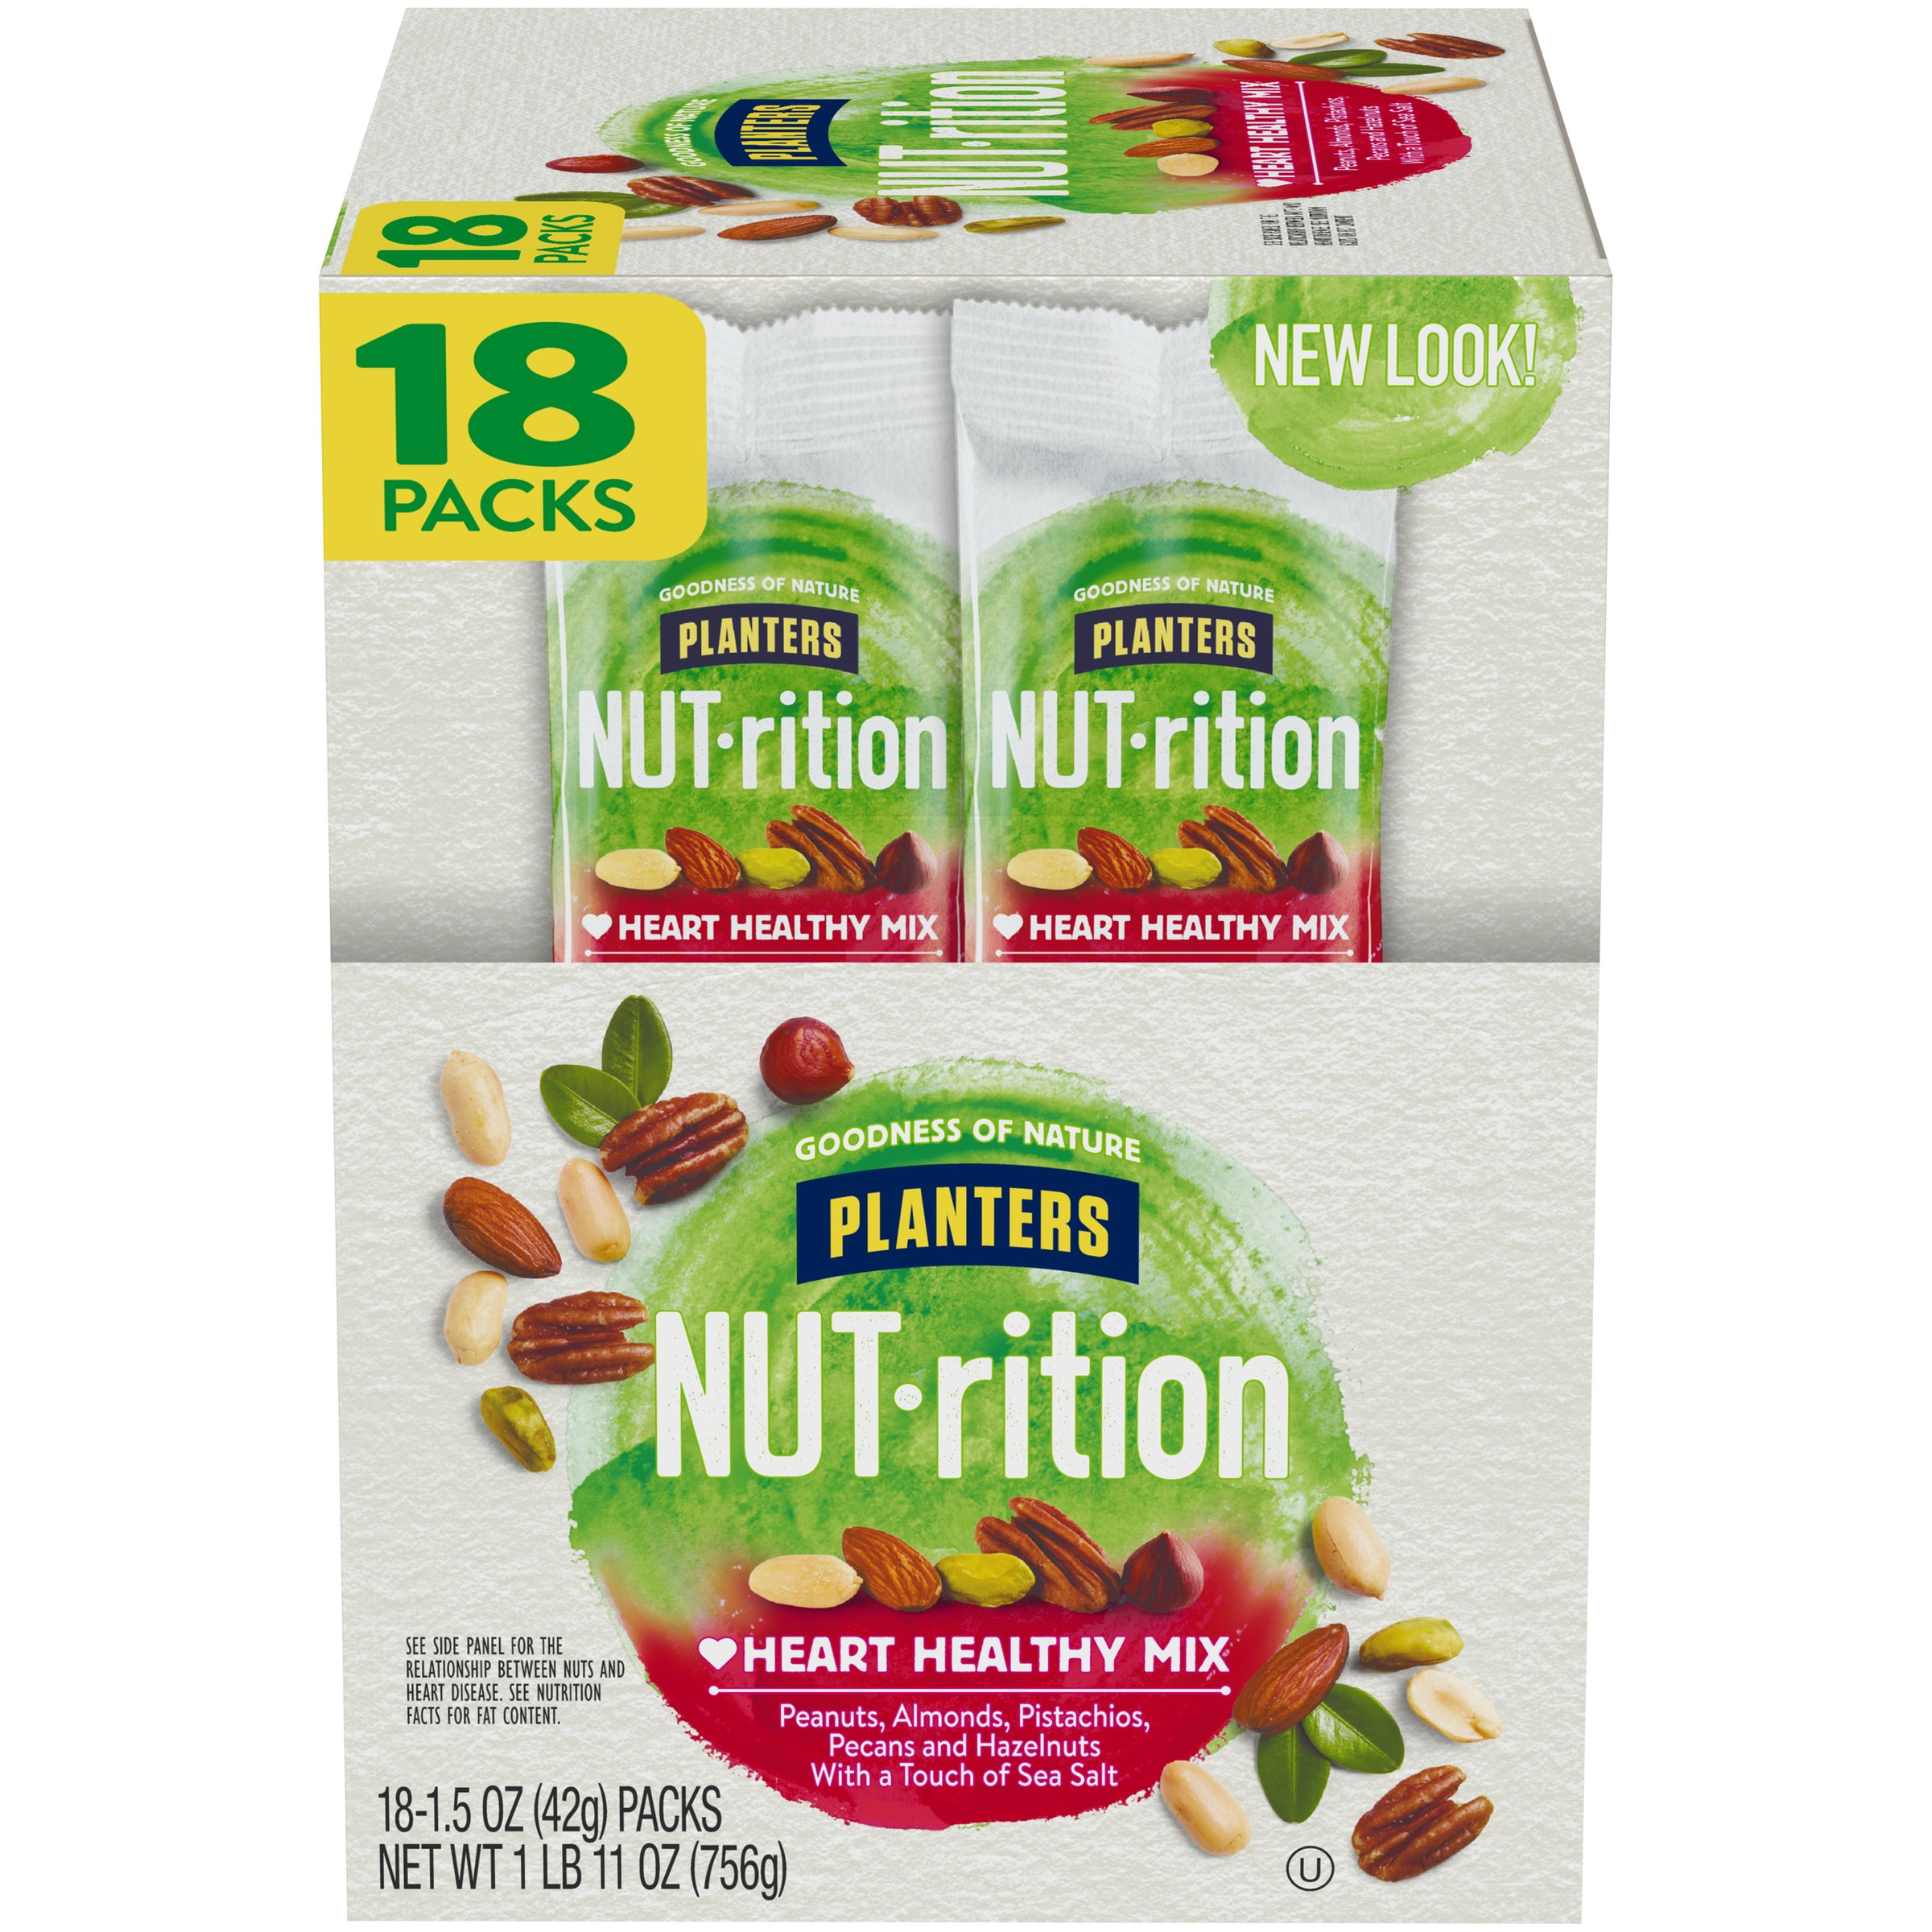 NUTrition Heart Healthy Nut Mix (1.5 oz Bags, Pack of 18) by Planters (Image #1)